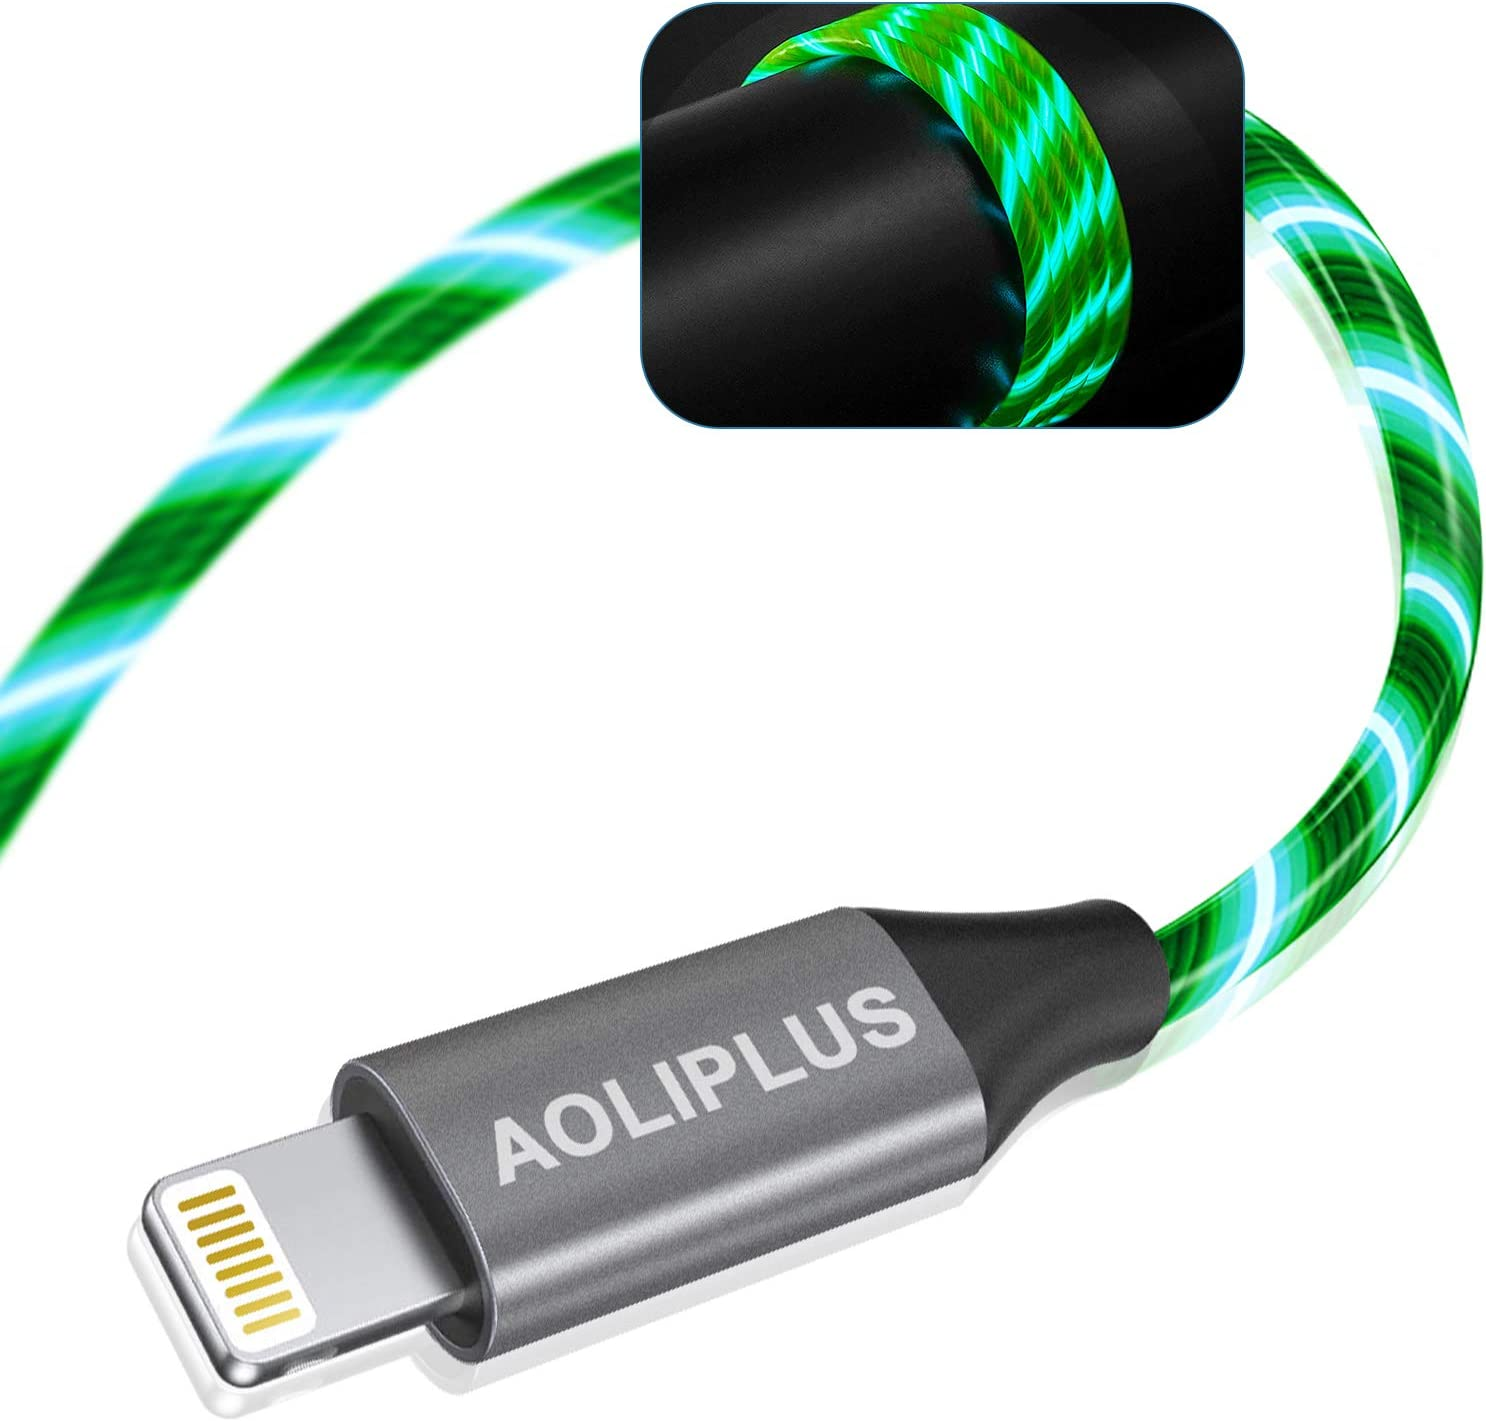 iPhone Charger, AOLIPLUS 6FT LED Lightning Cable [Apple MFi Certified ] USB Charging/Sync Lightning Cord Compatible with iPhone SE 12 11 11 Pro 11 Pro Max Xs MAX XR X 8 7 6S 6 5, iPad and More - Green